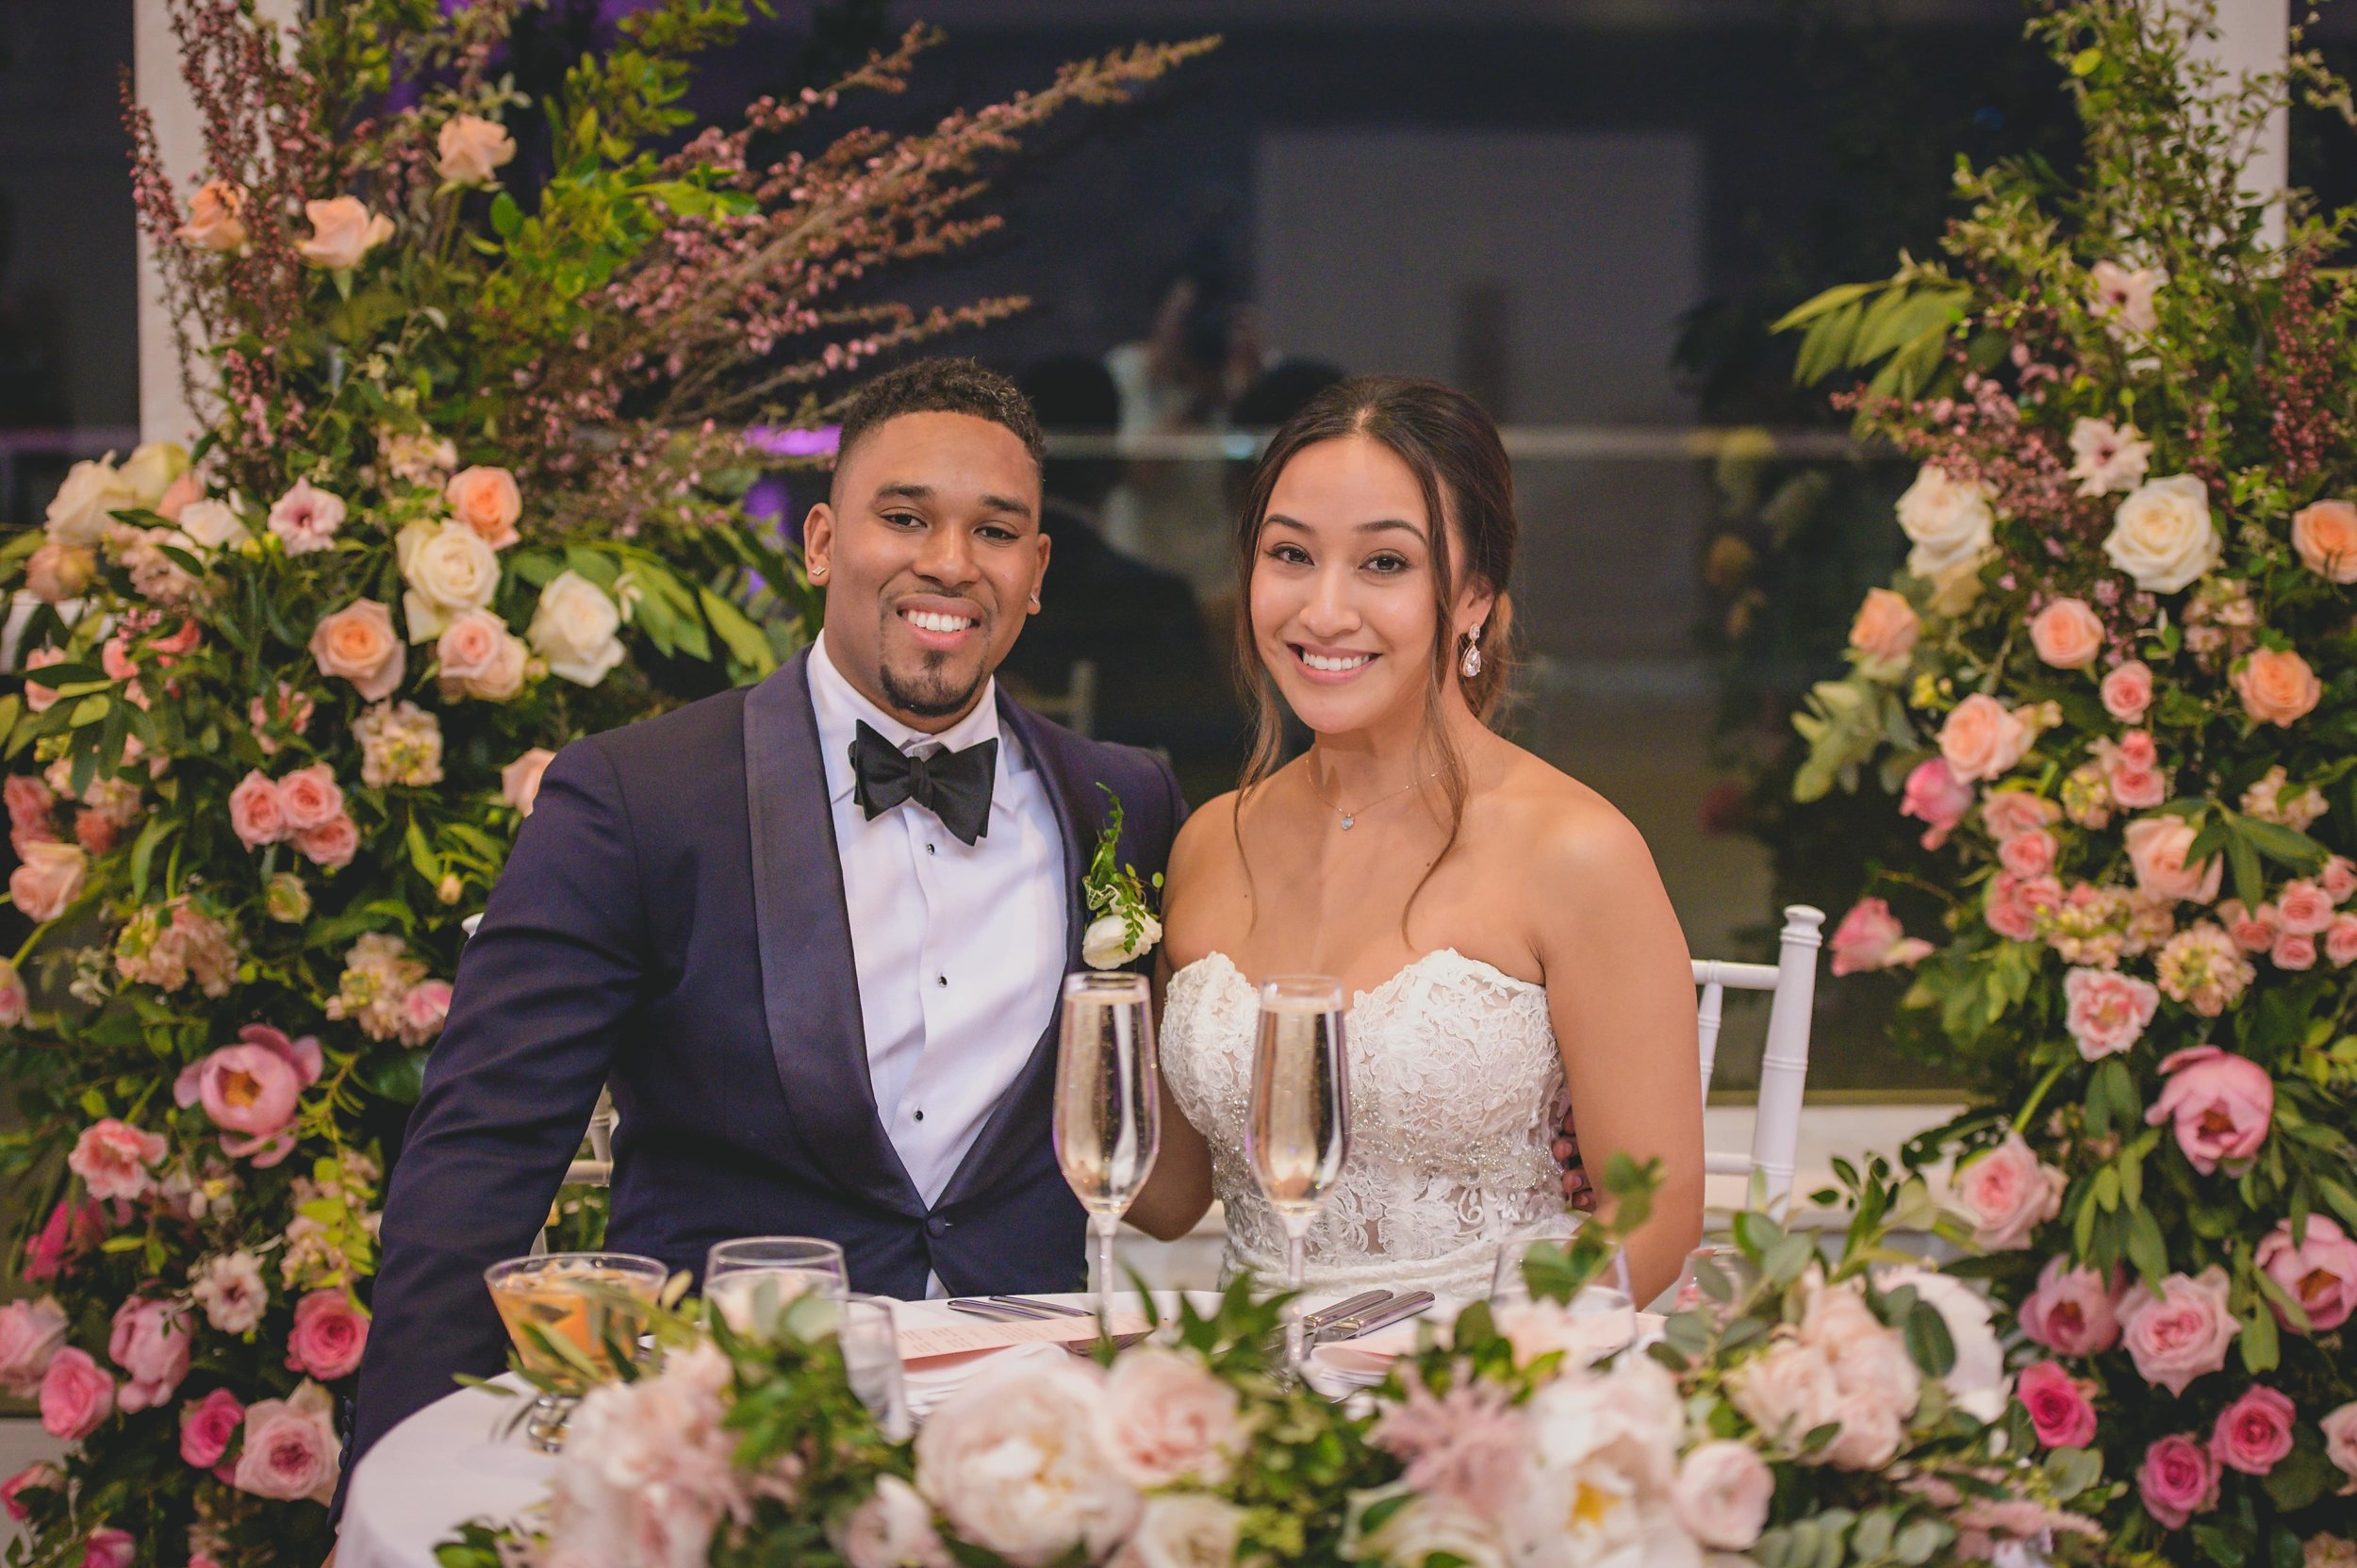 Helpful tips for choosing a wedding photographer - Bride and groom sitting at the reception table surrounded by flowers.